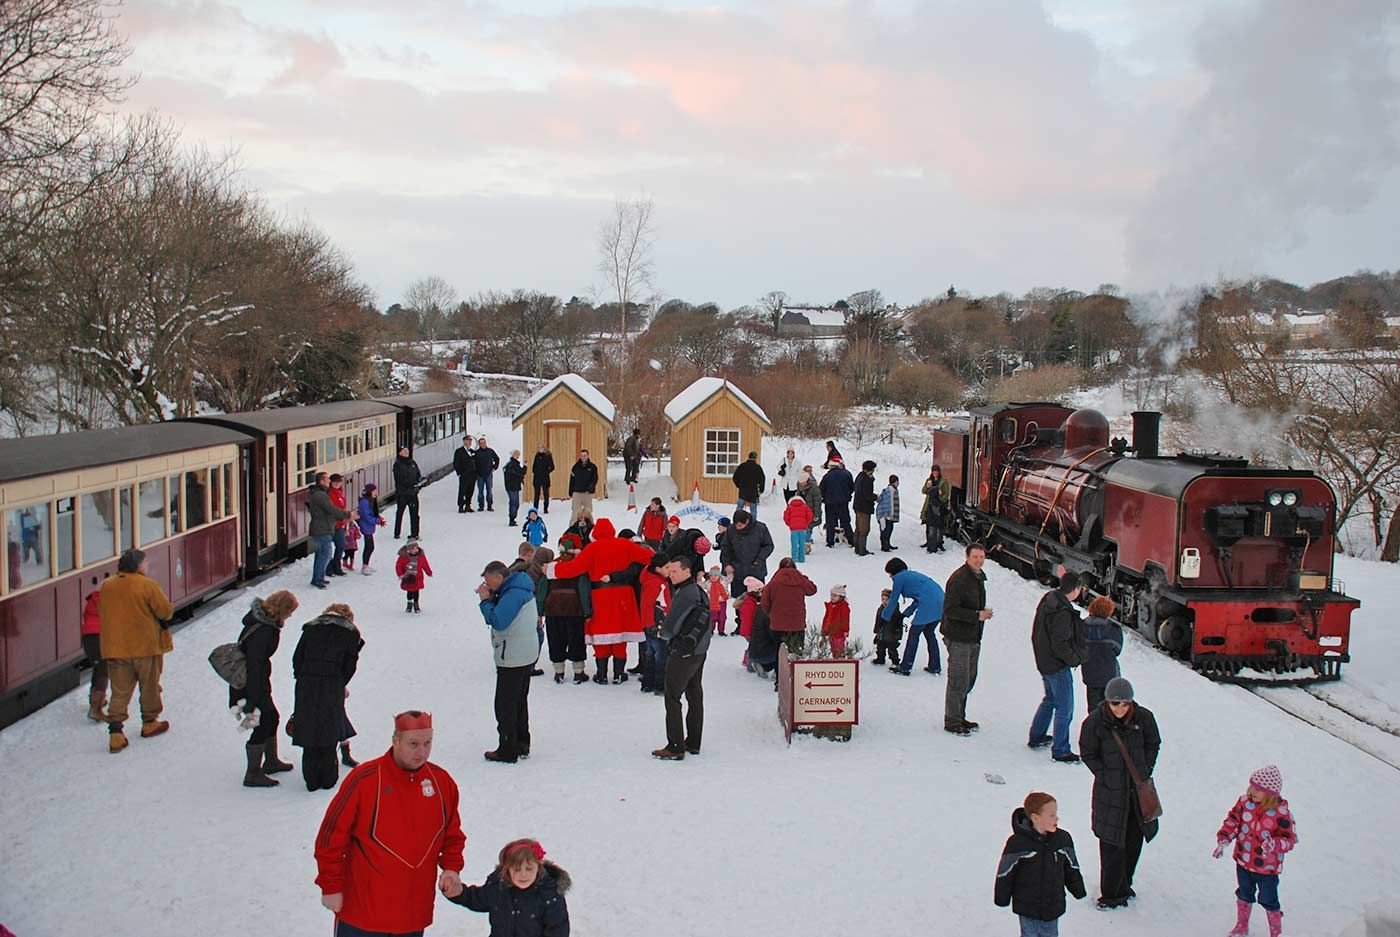 Christmas at Waunfawr as a Santa train stands in the platform